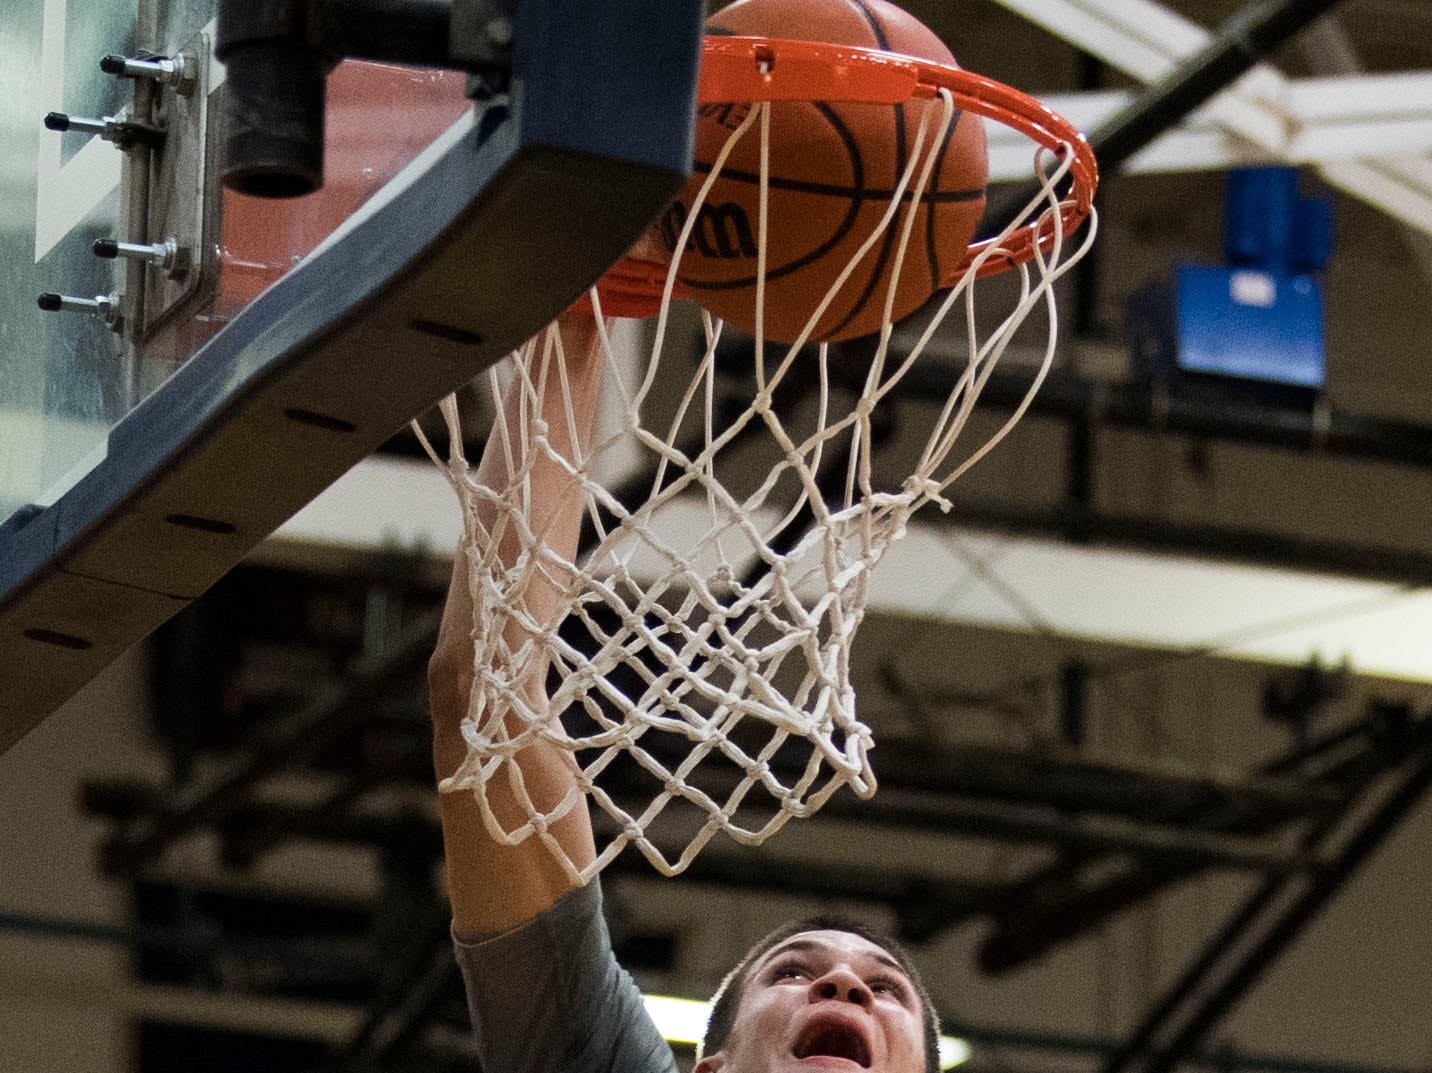 Maryville's Ashton Maples (2) dunks the ball during a high school basketball game between Maryville and Farragut at Farragut, Friday, Jan. 11, 2019.